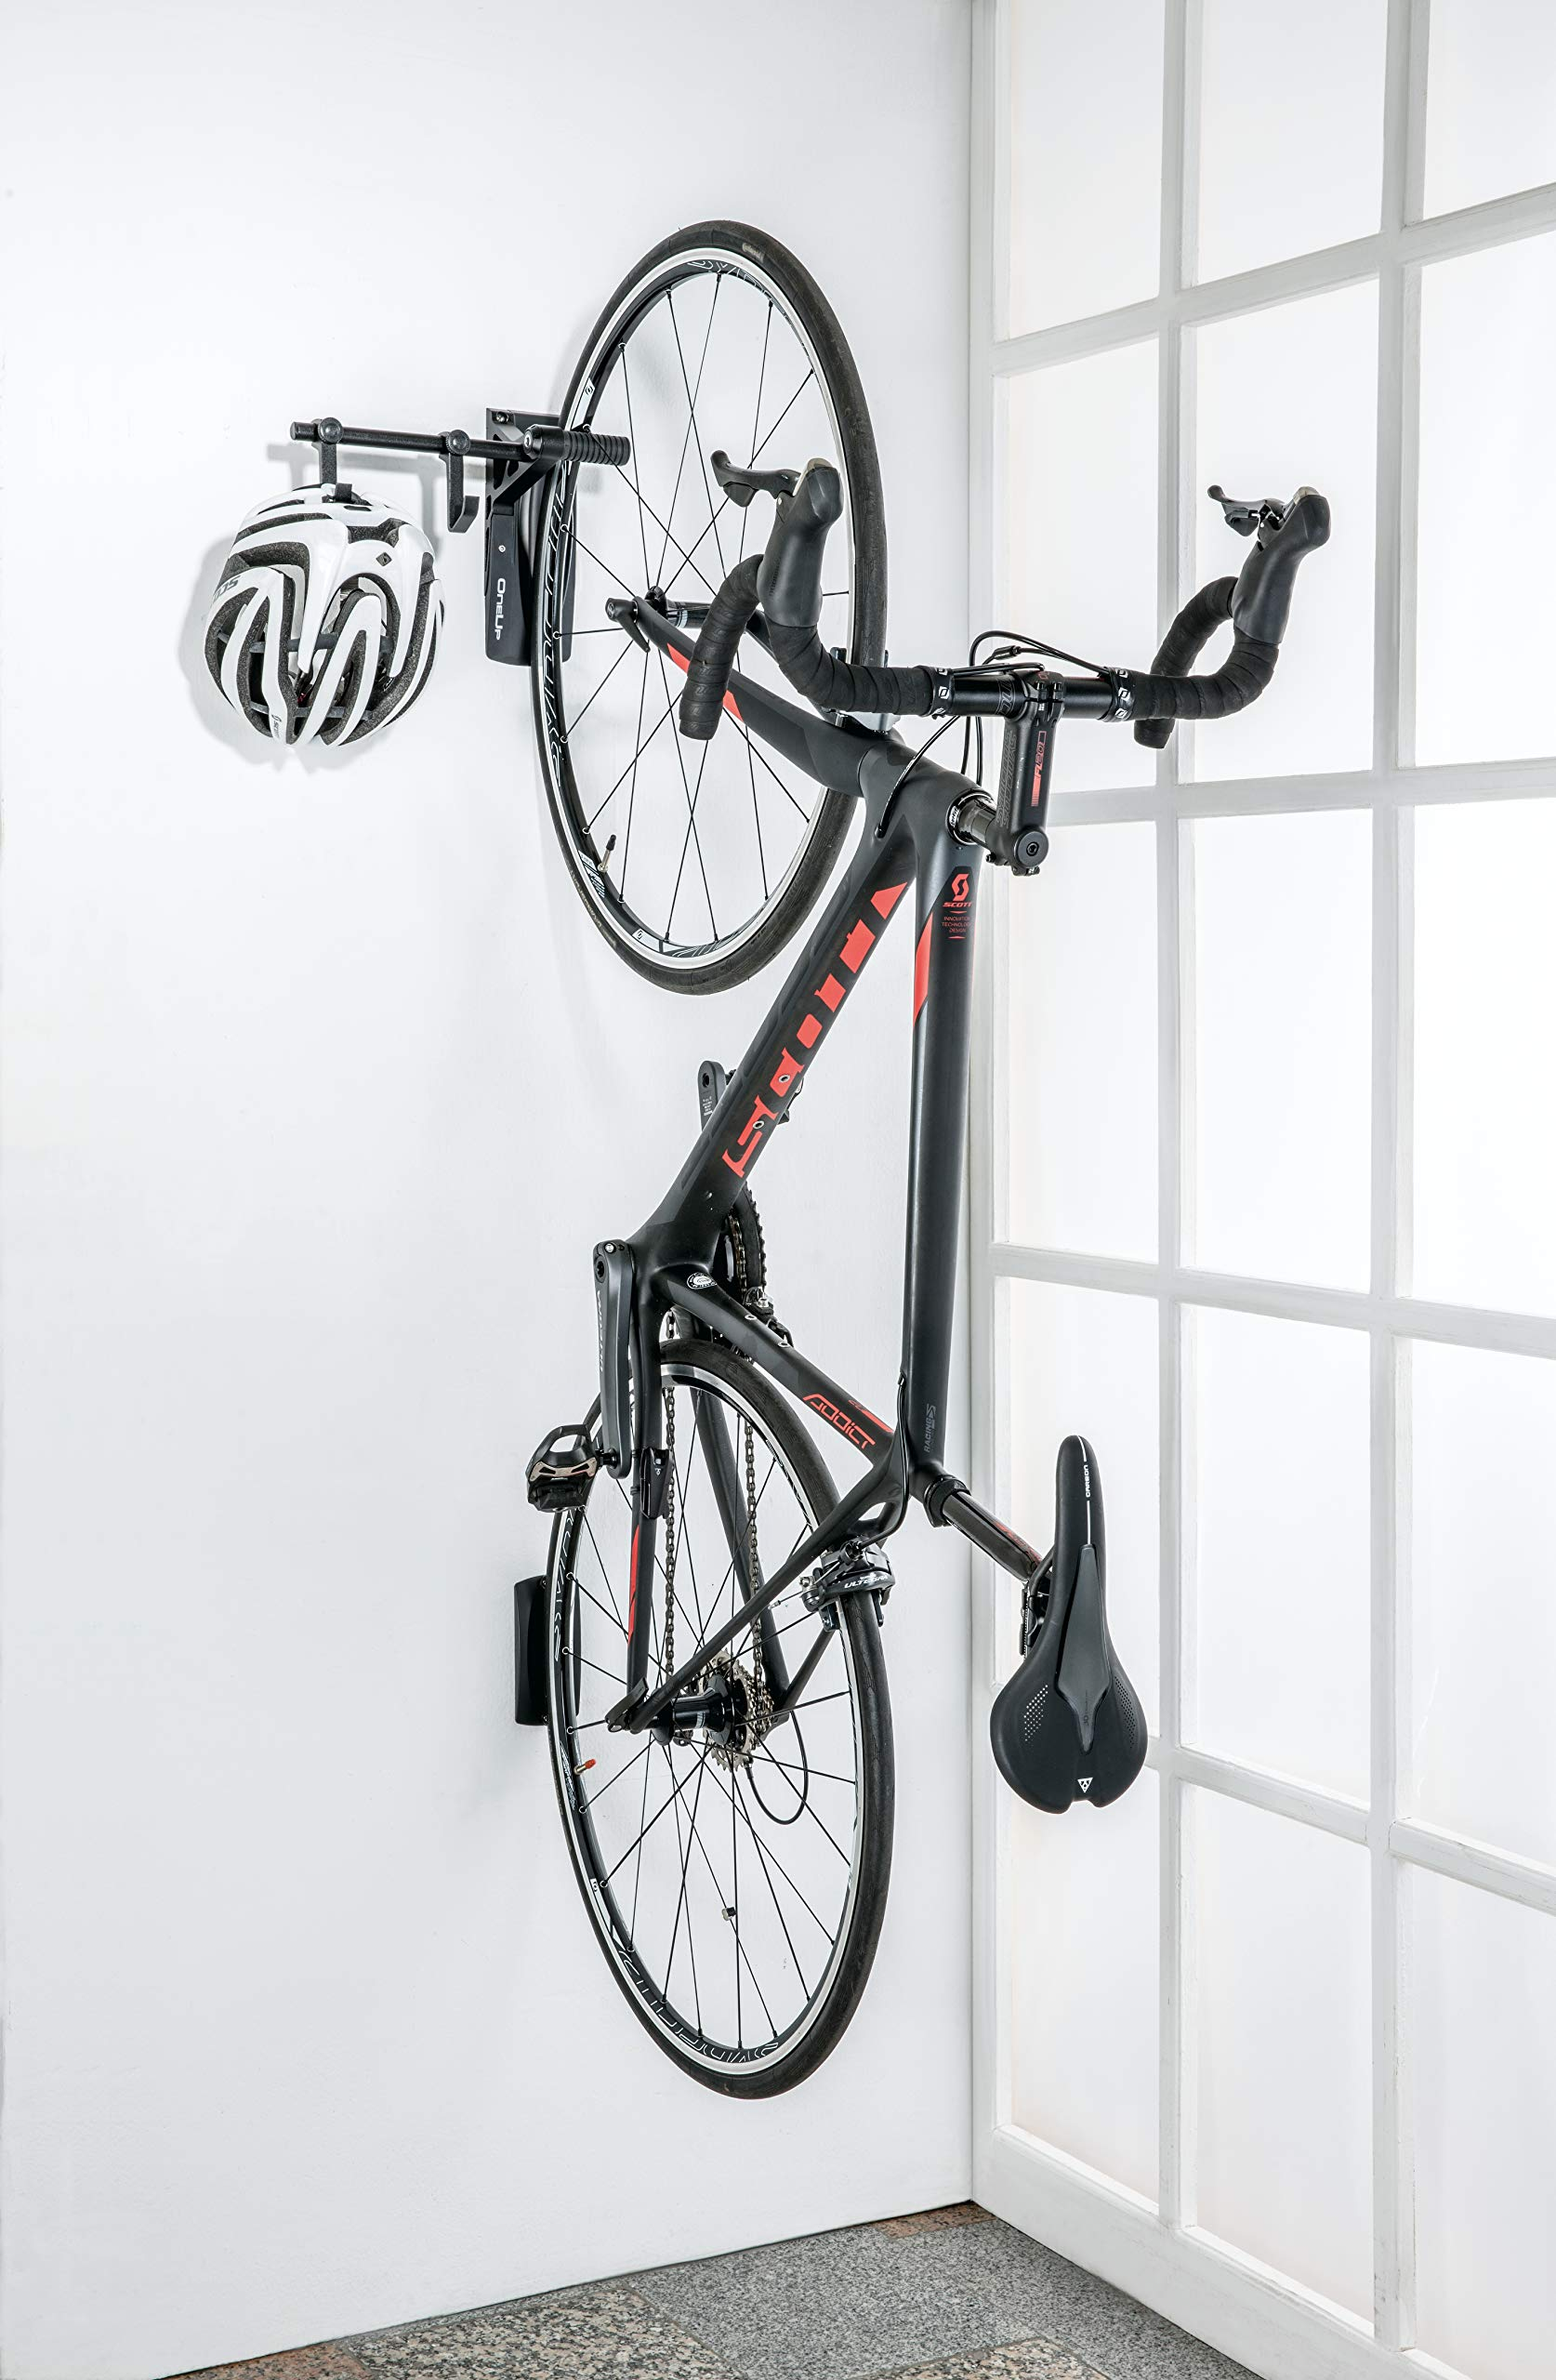 Topeak Bike Fijación Bike Holder oneup Wall Rack, Black, One Size ...